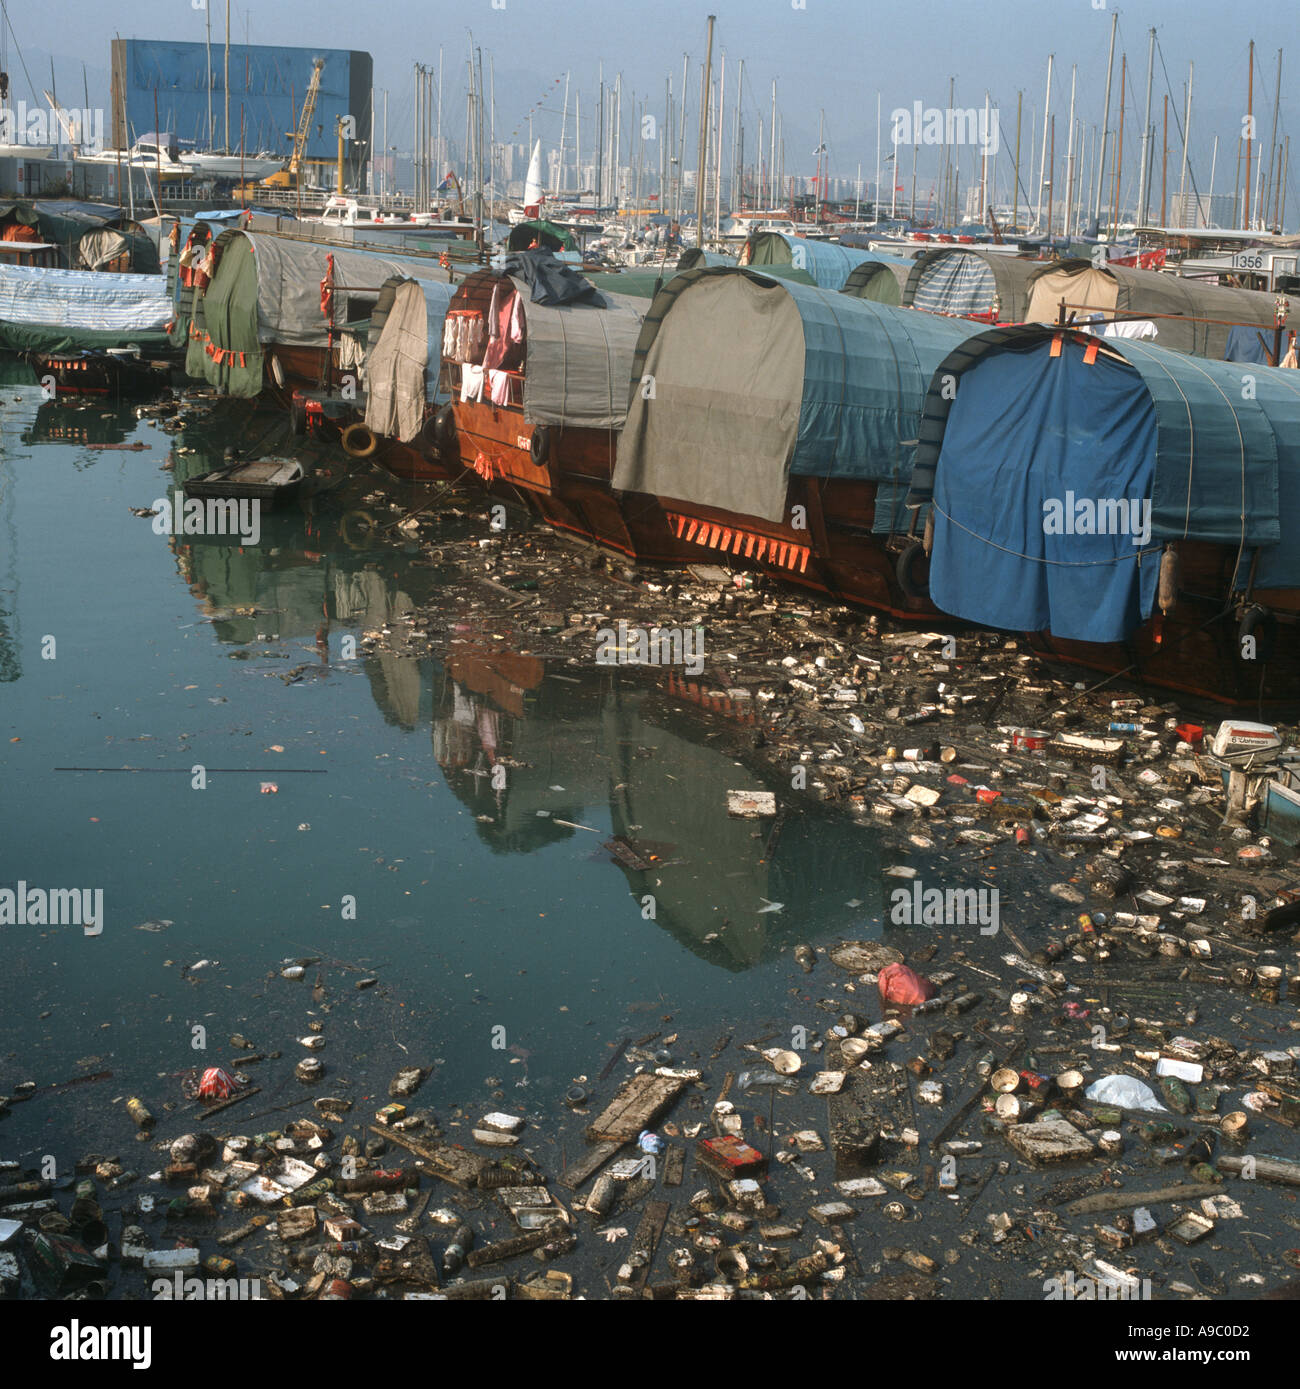 AWAKE, la marque de montre engagée - Page 2 Harbor-in-hong-kong-china-showing-garbage-and-pollution-A9C0D2